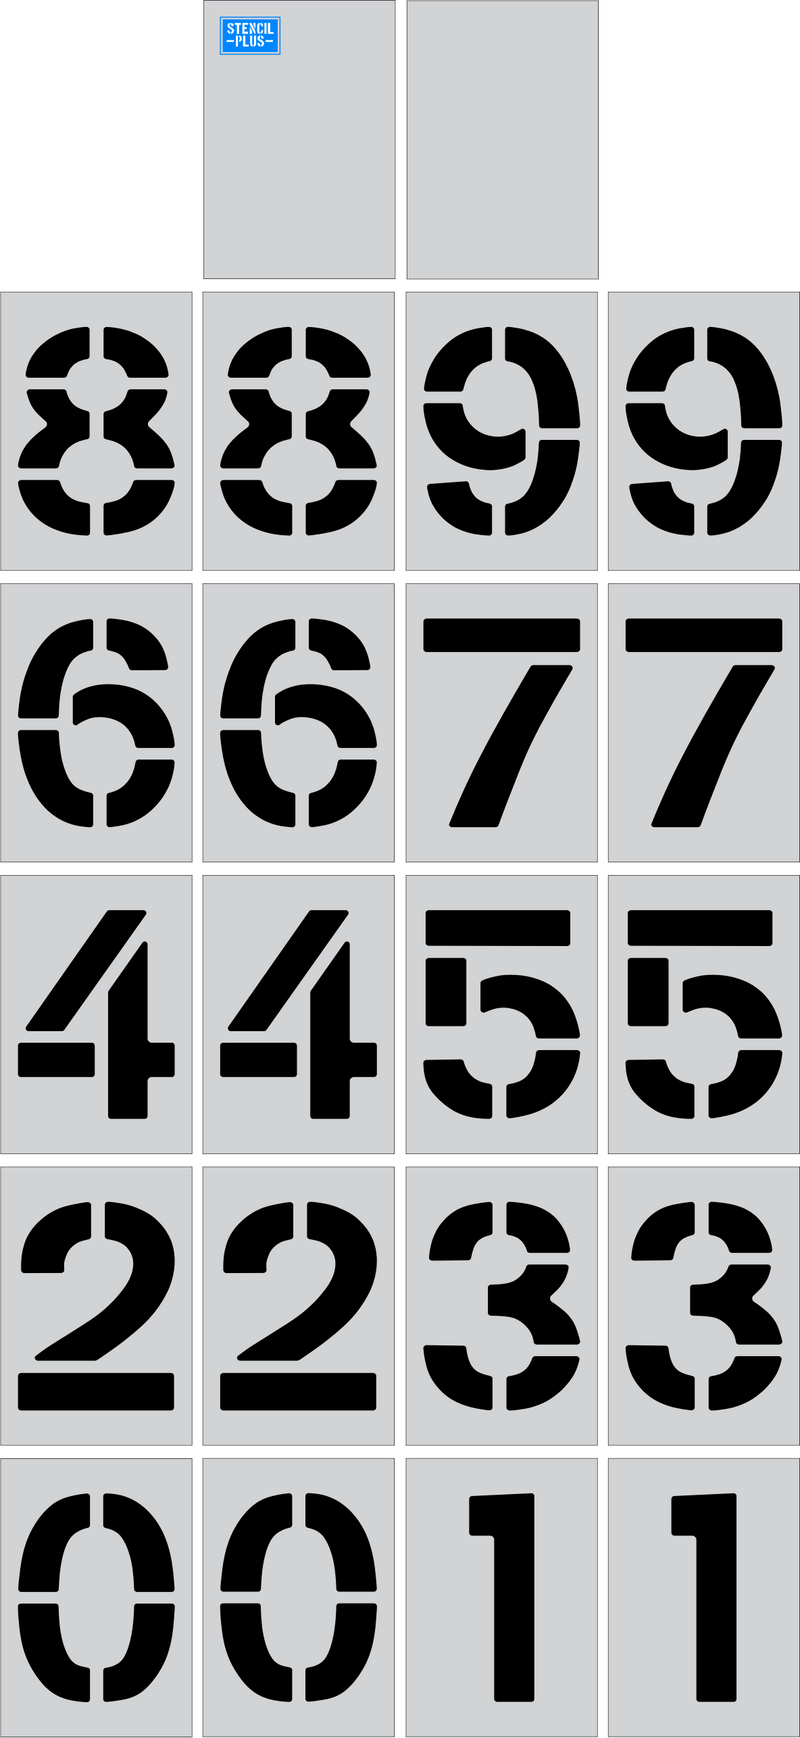 "36"" x  12"" Number Kit Parking Lot Pavement Marking Stencil"